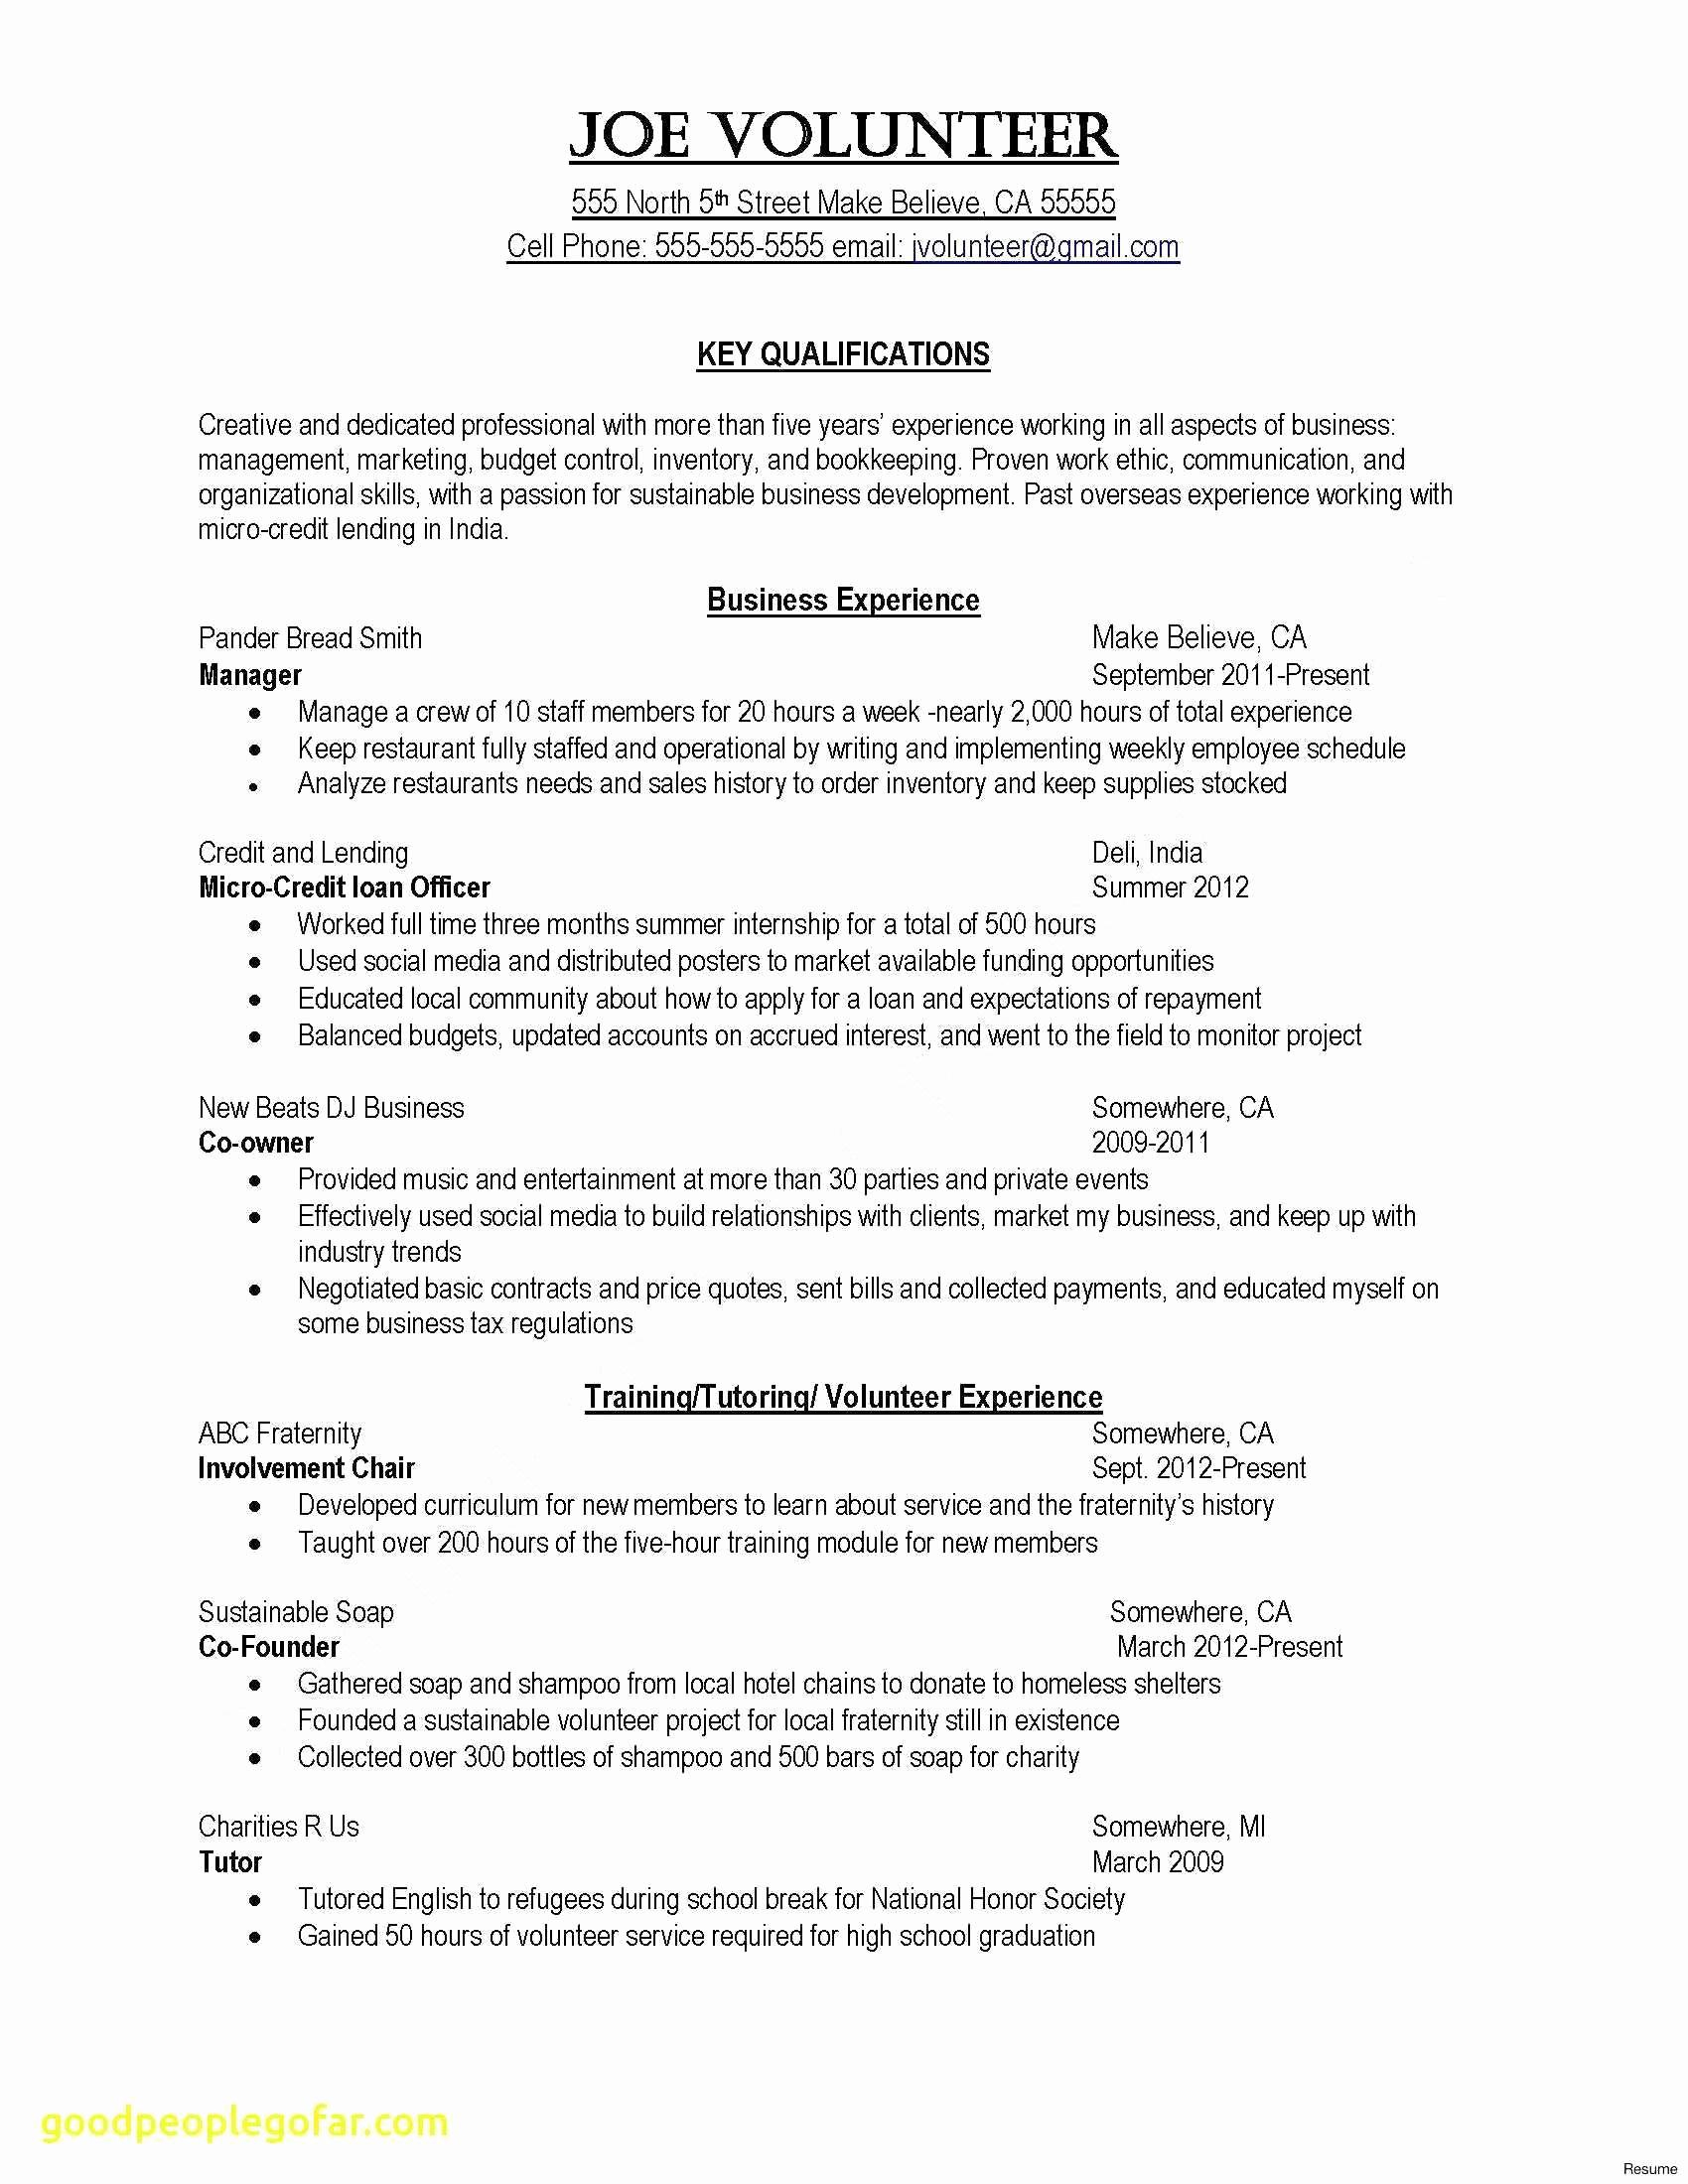 Professional Free Resume Templates - 38 Best Free Samples Resumes Resume Templates Ideas 2018